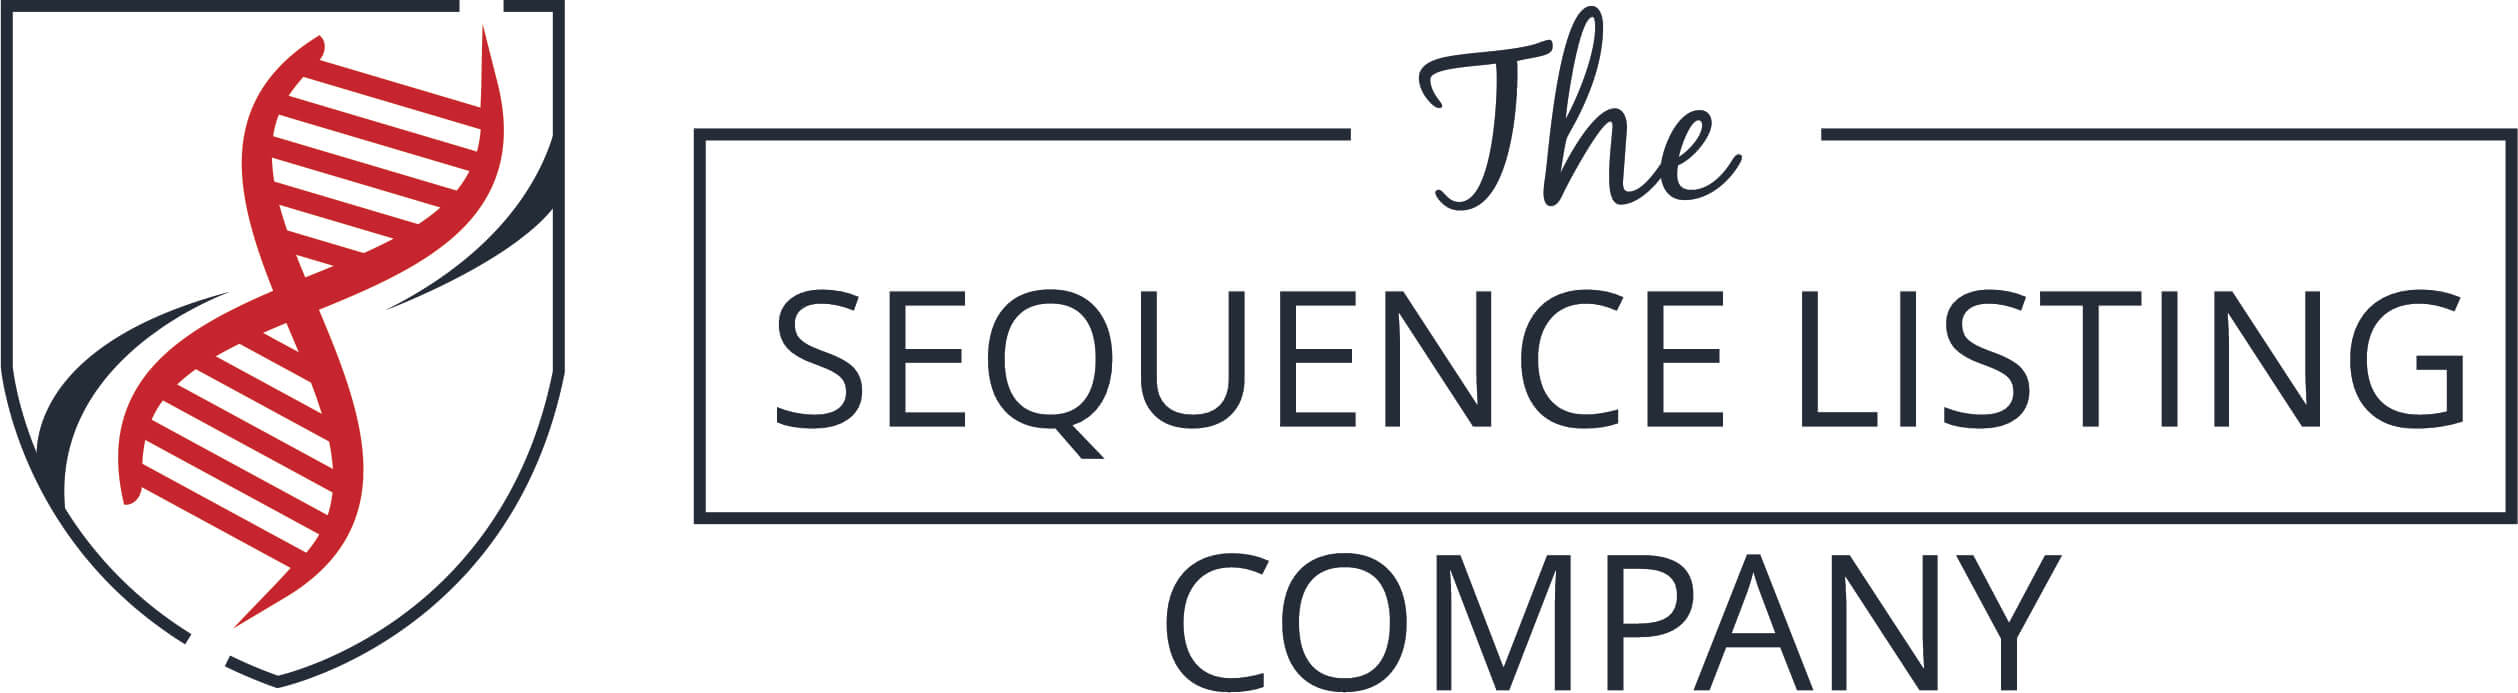 The Sequence Listing Company